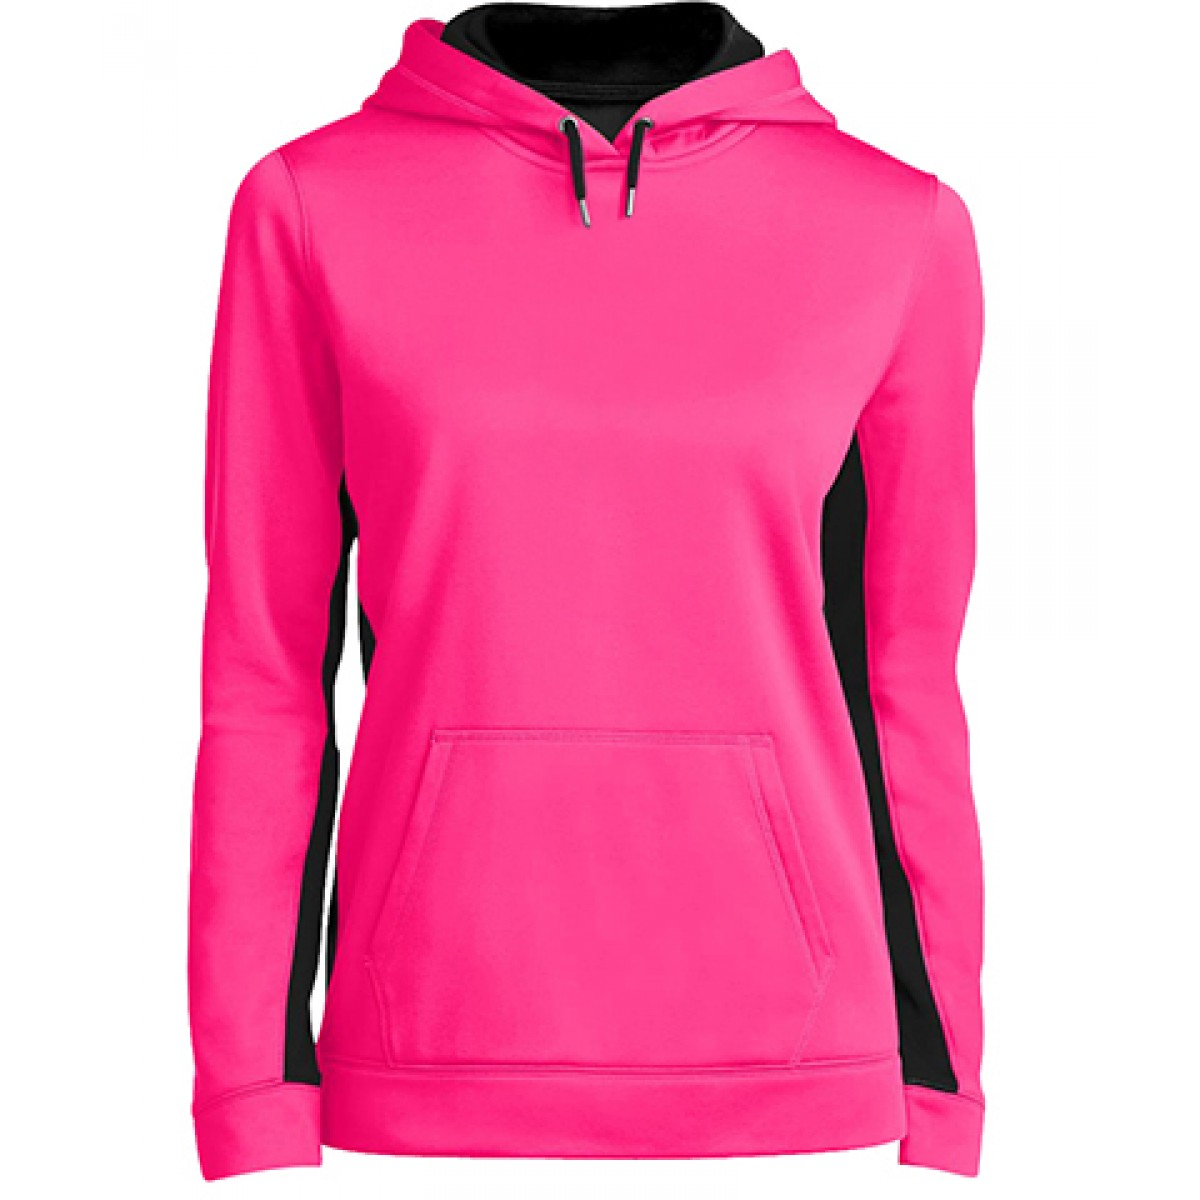 Ladies Colorblock Hooded Pullover-Neon Pink Black-4XL